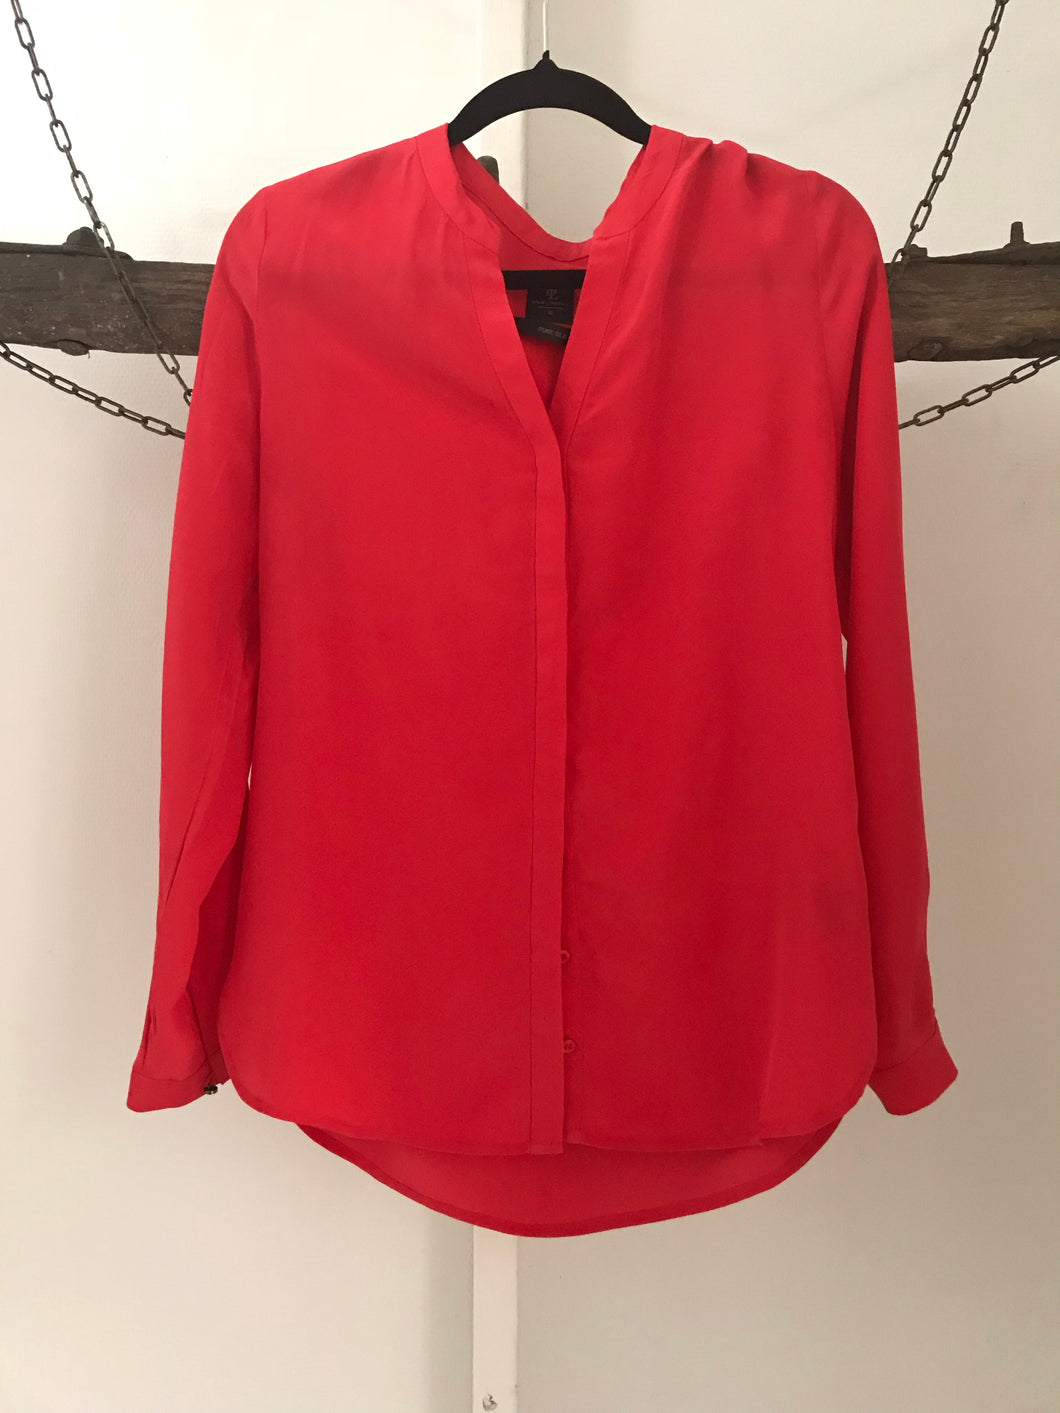 David Lawrence red silk long sleeve blouse Size 8